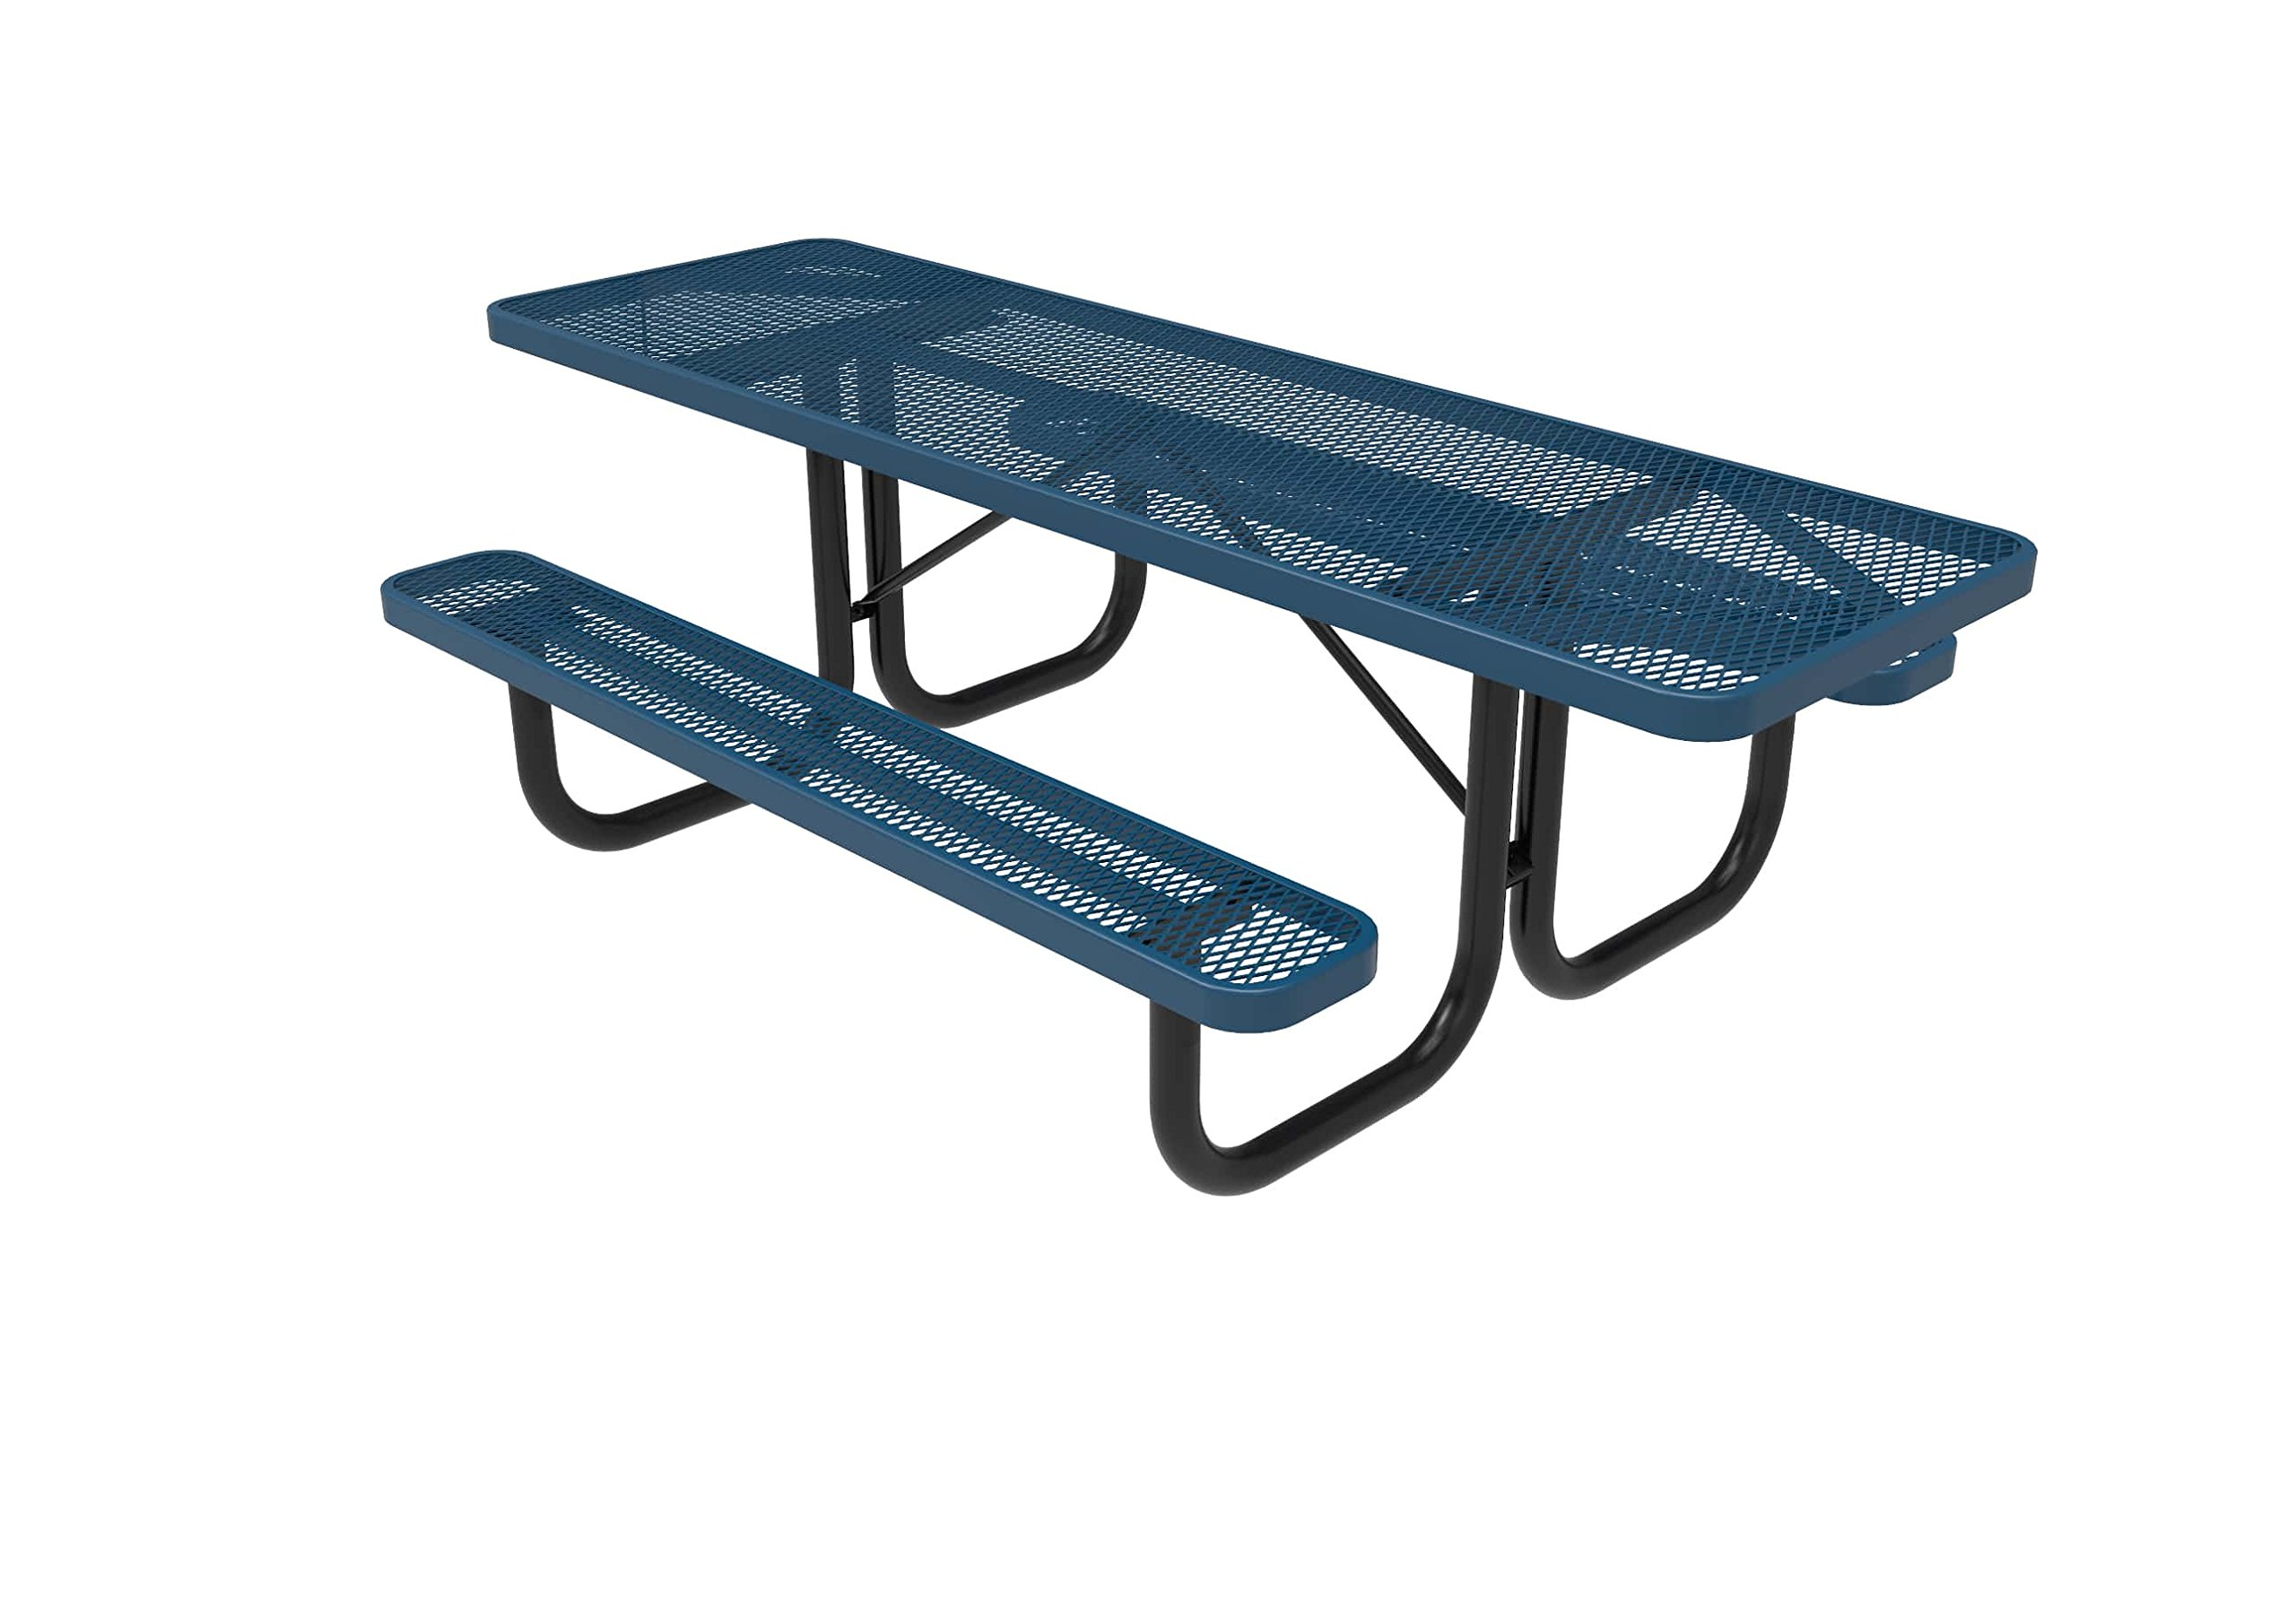 Coated Outdoor Furniture T8H2-LBL Rectangular Portable Picnic Table, Handicap Accessible on Both Ends, 8 Feet, Light Blue by CoatedOutdoorFurniture